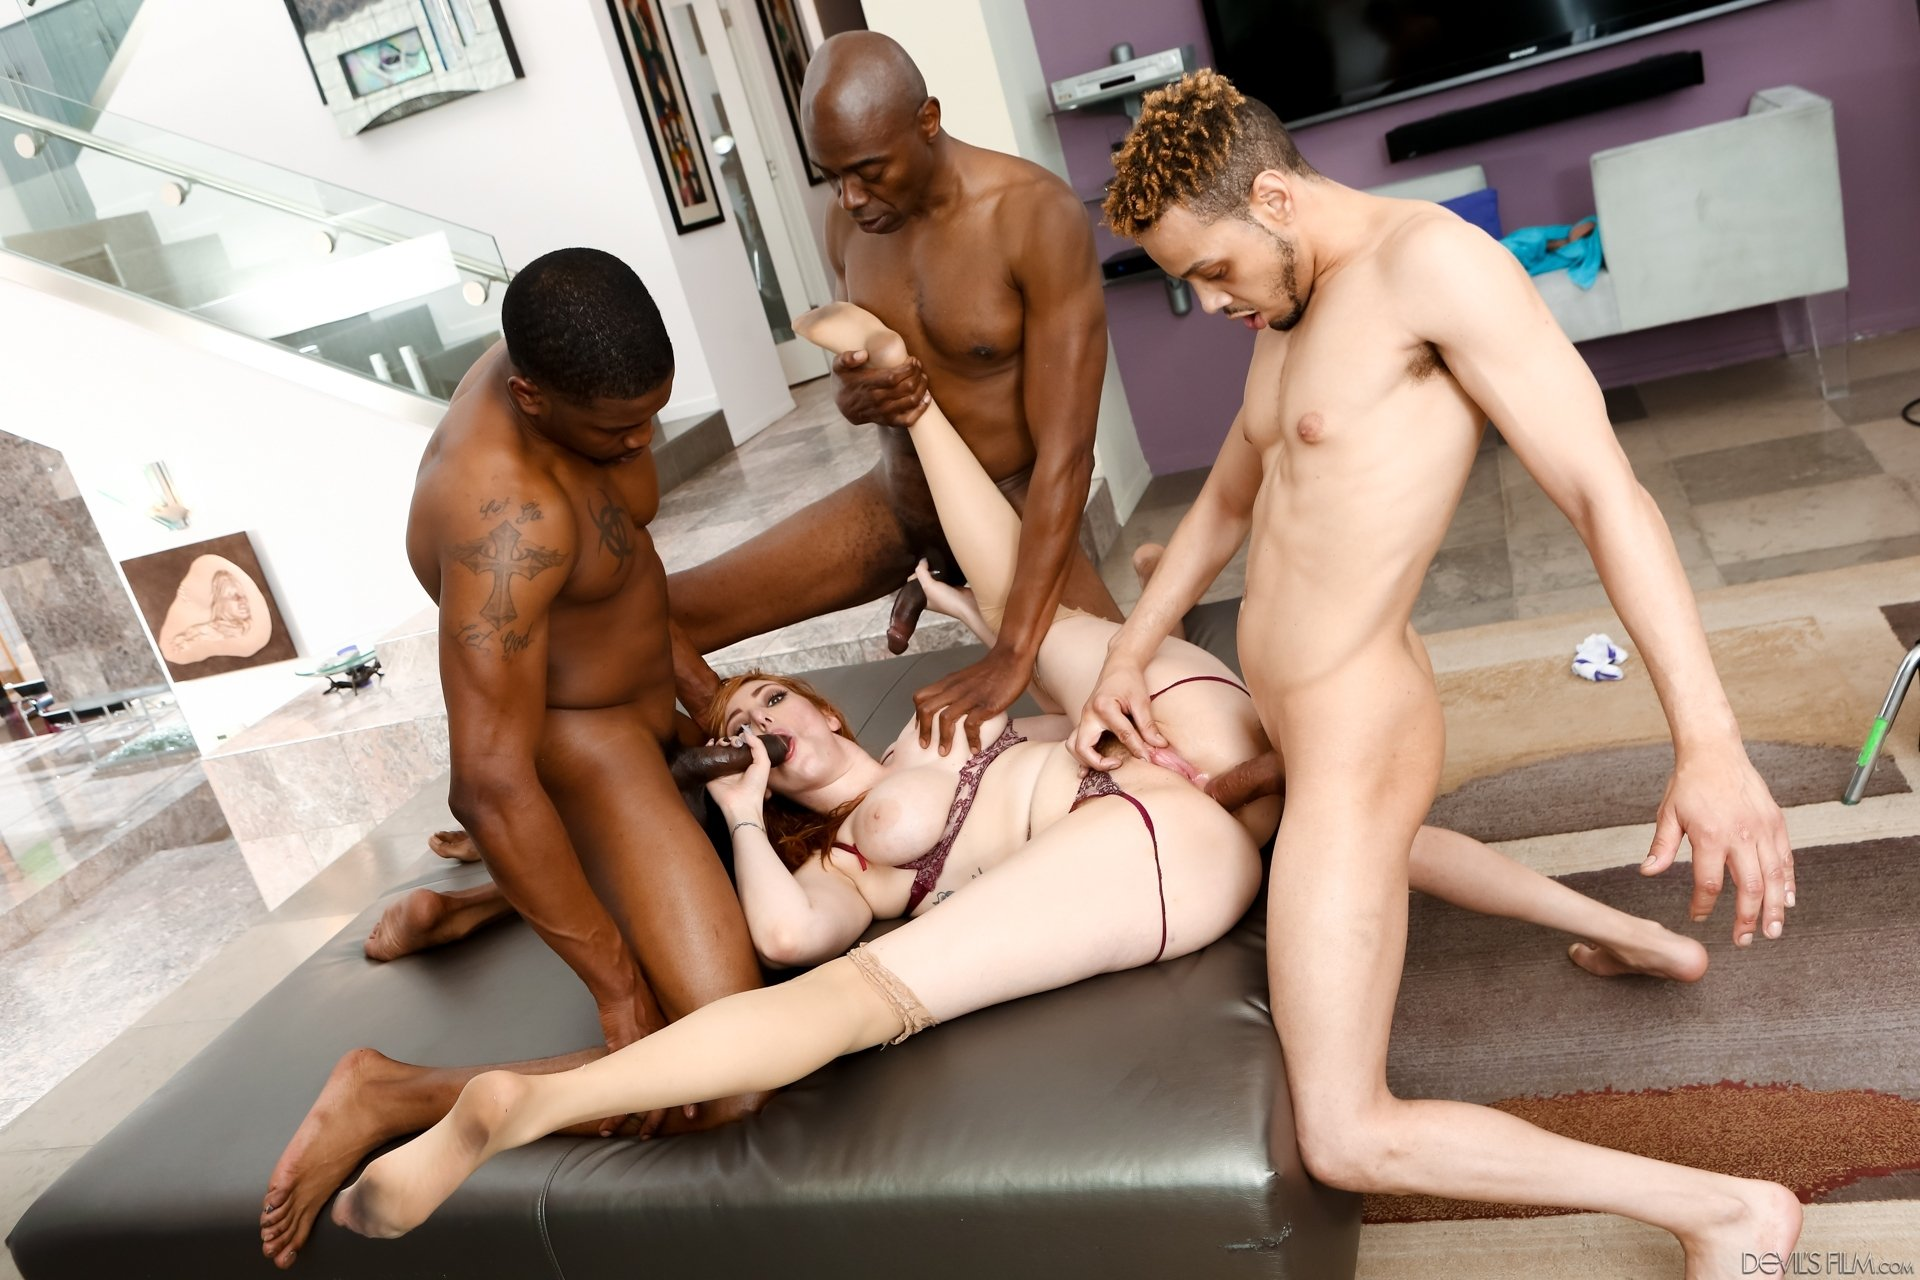 Wife fucking brother in law beside sleeping impotent husband